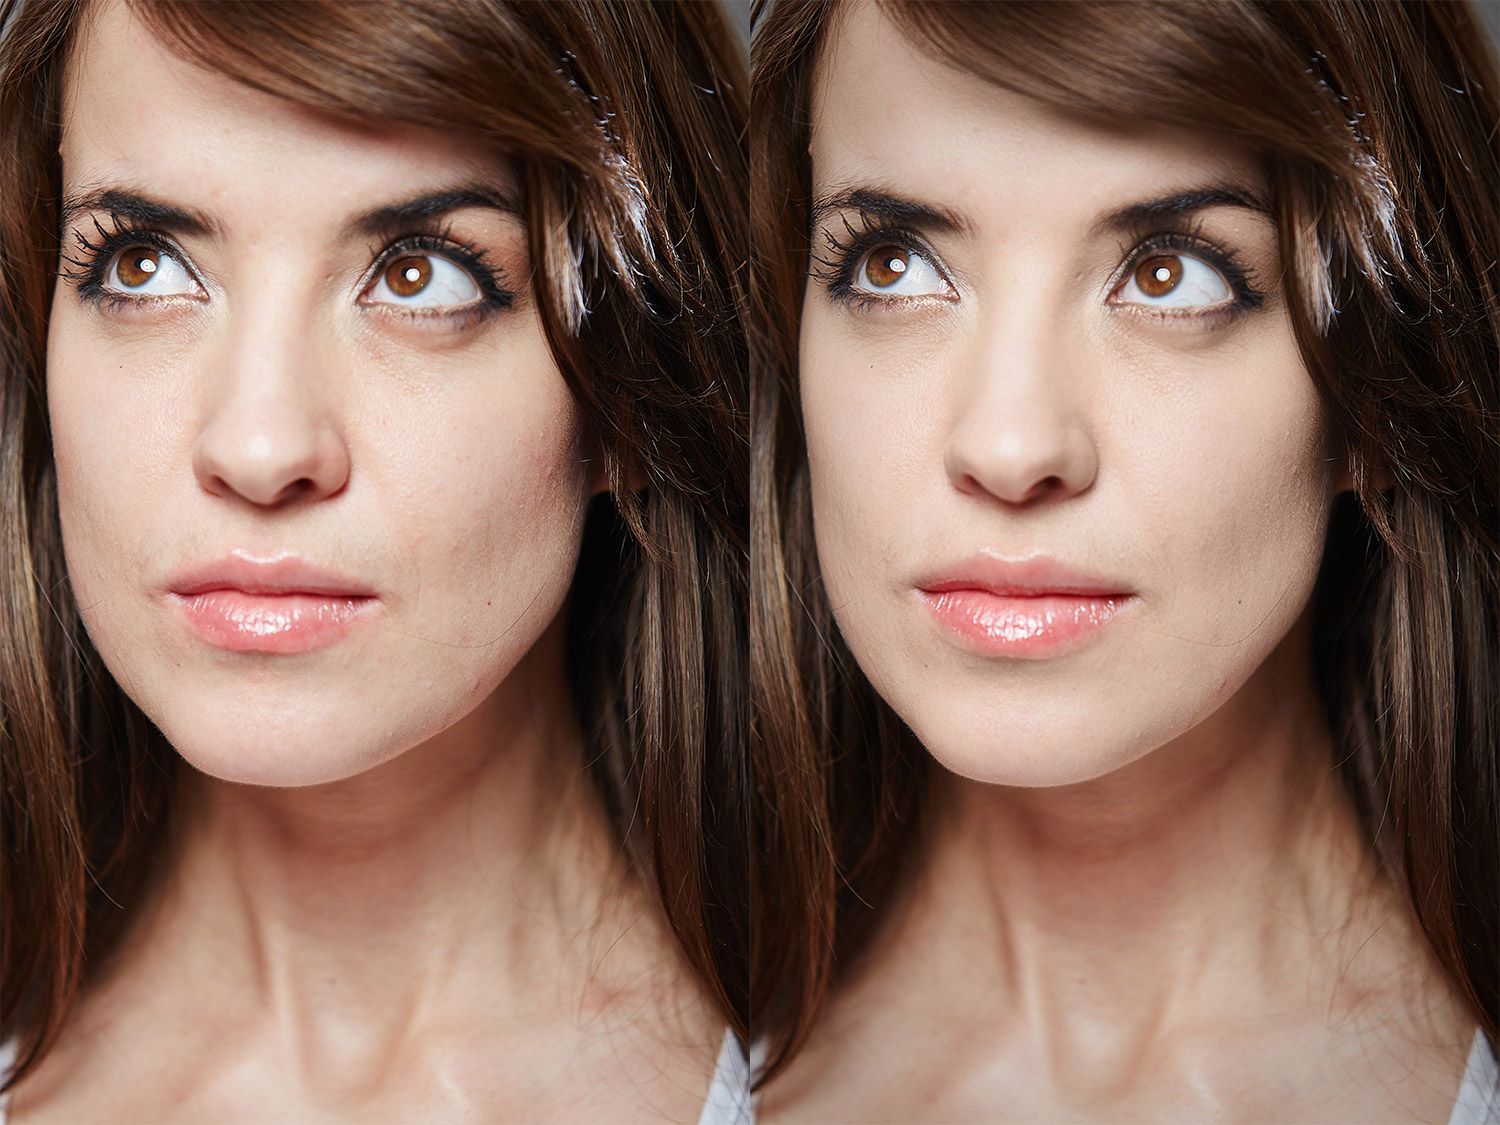 a before and after face sculpt retouch in PhotoDiva